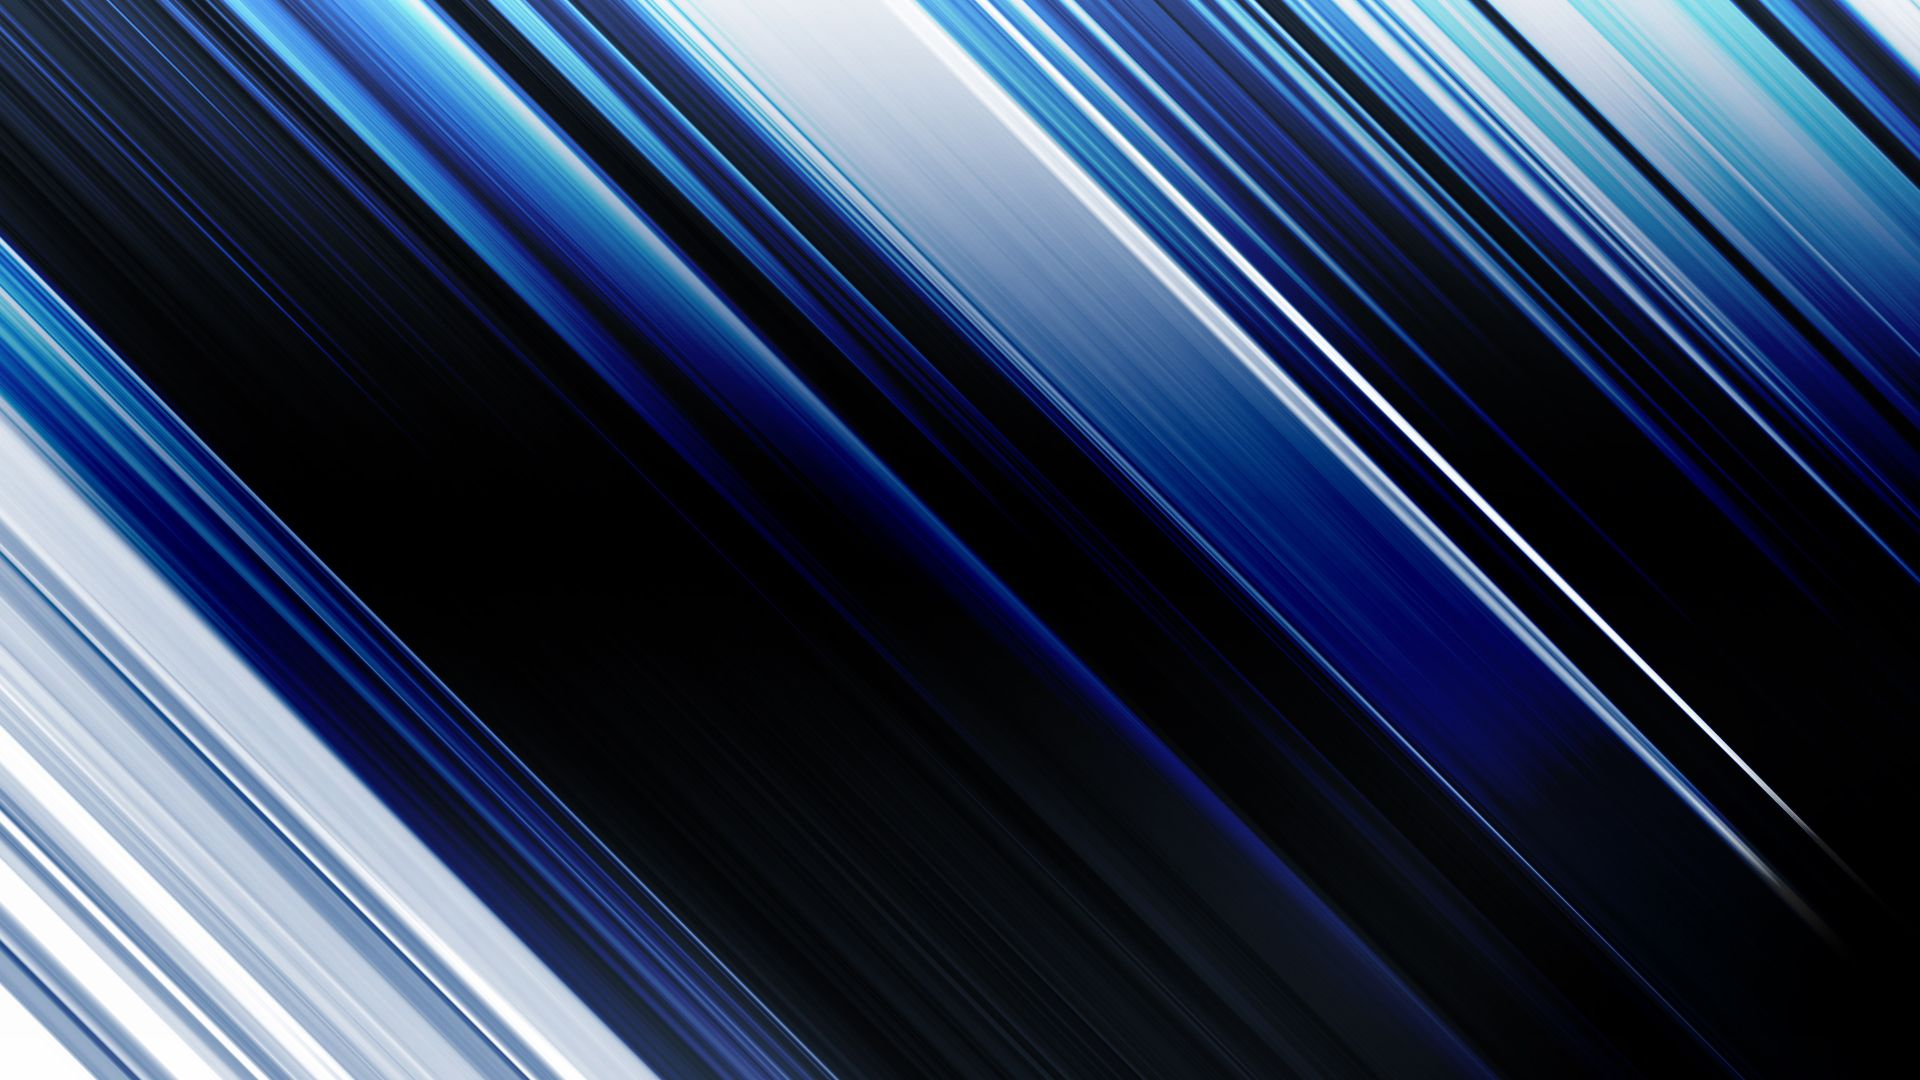 Abstract Blue Motion Blur Line Wallpaper Background hd